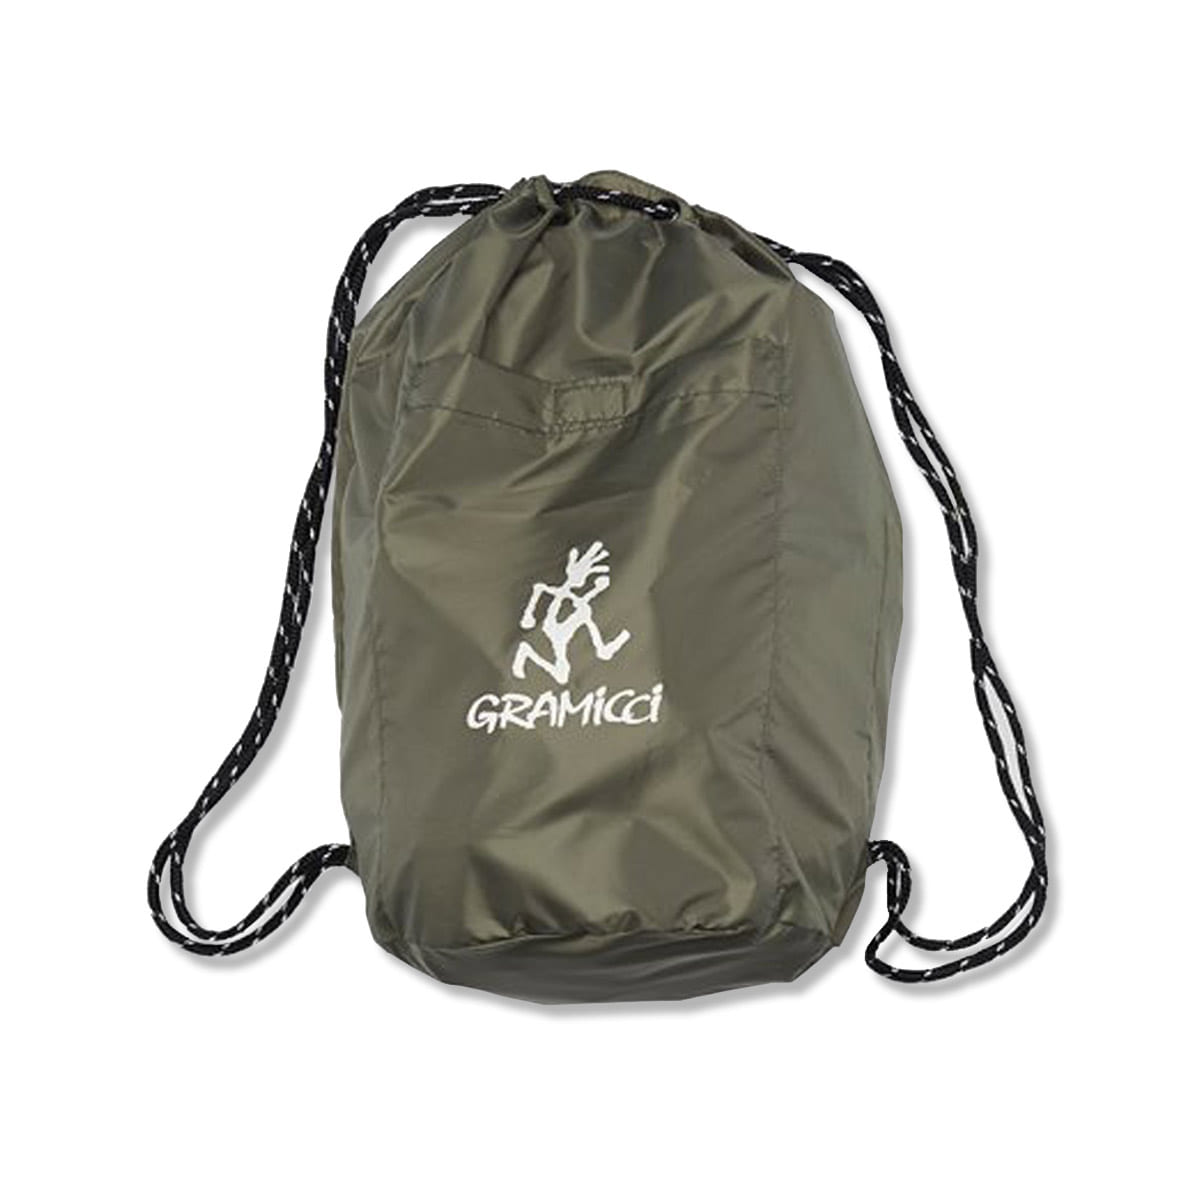 [GRAMICCI] PACKABLE KNAPSACK 'ARMY'